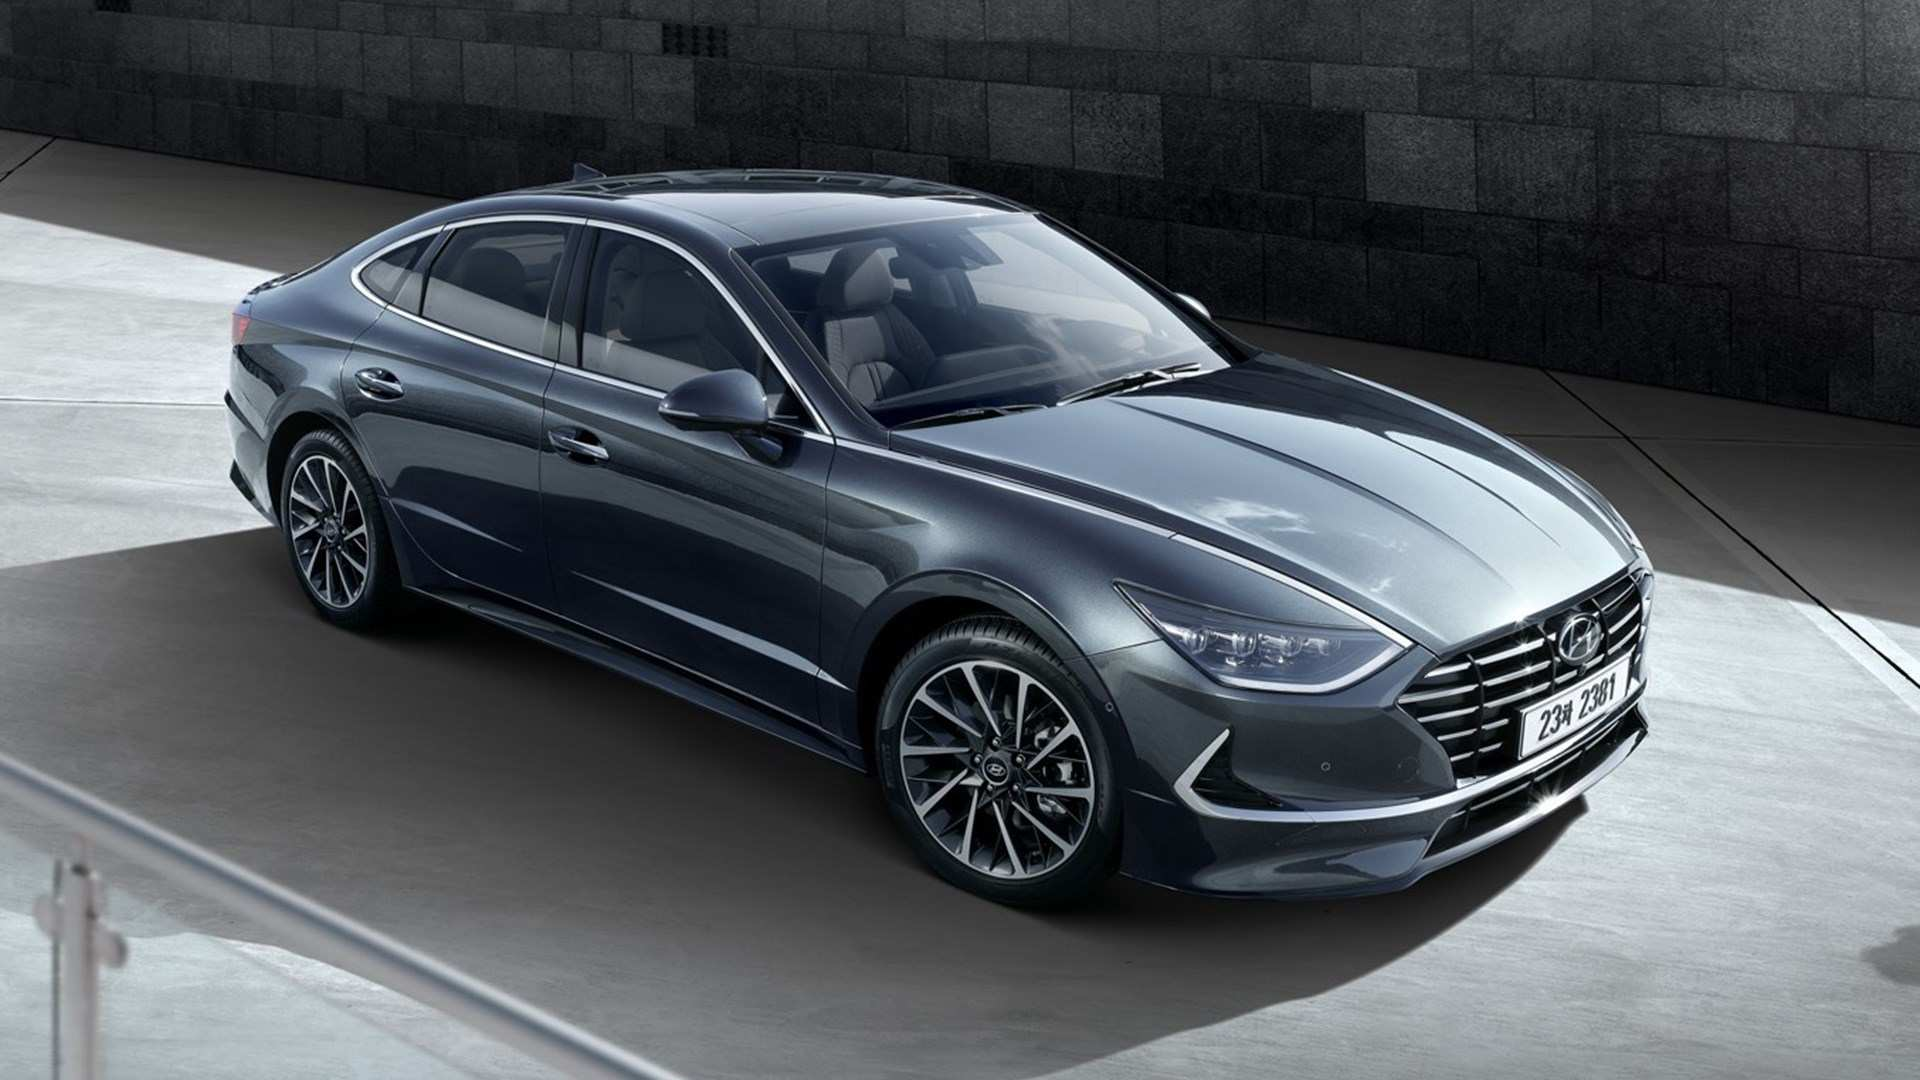 47 New 2020 Hyundai Sonata Release Date Review and Release date